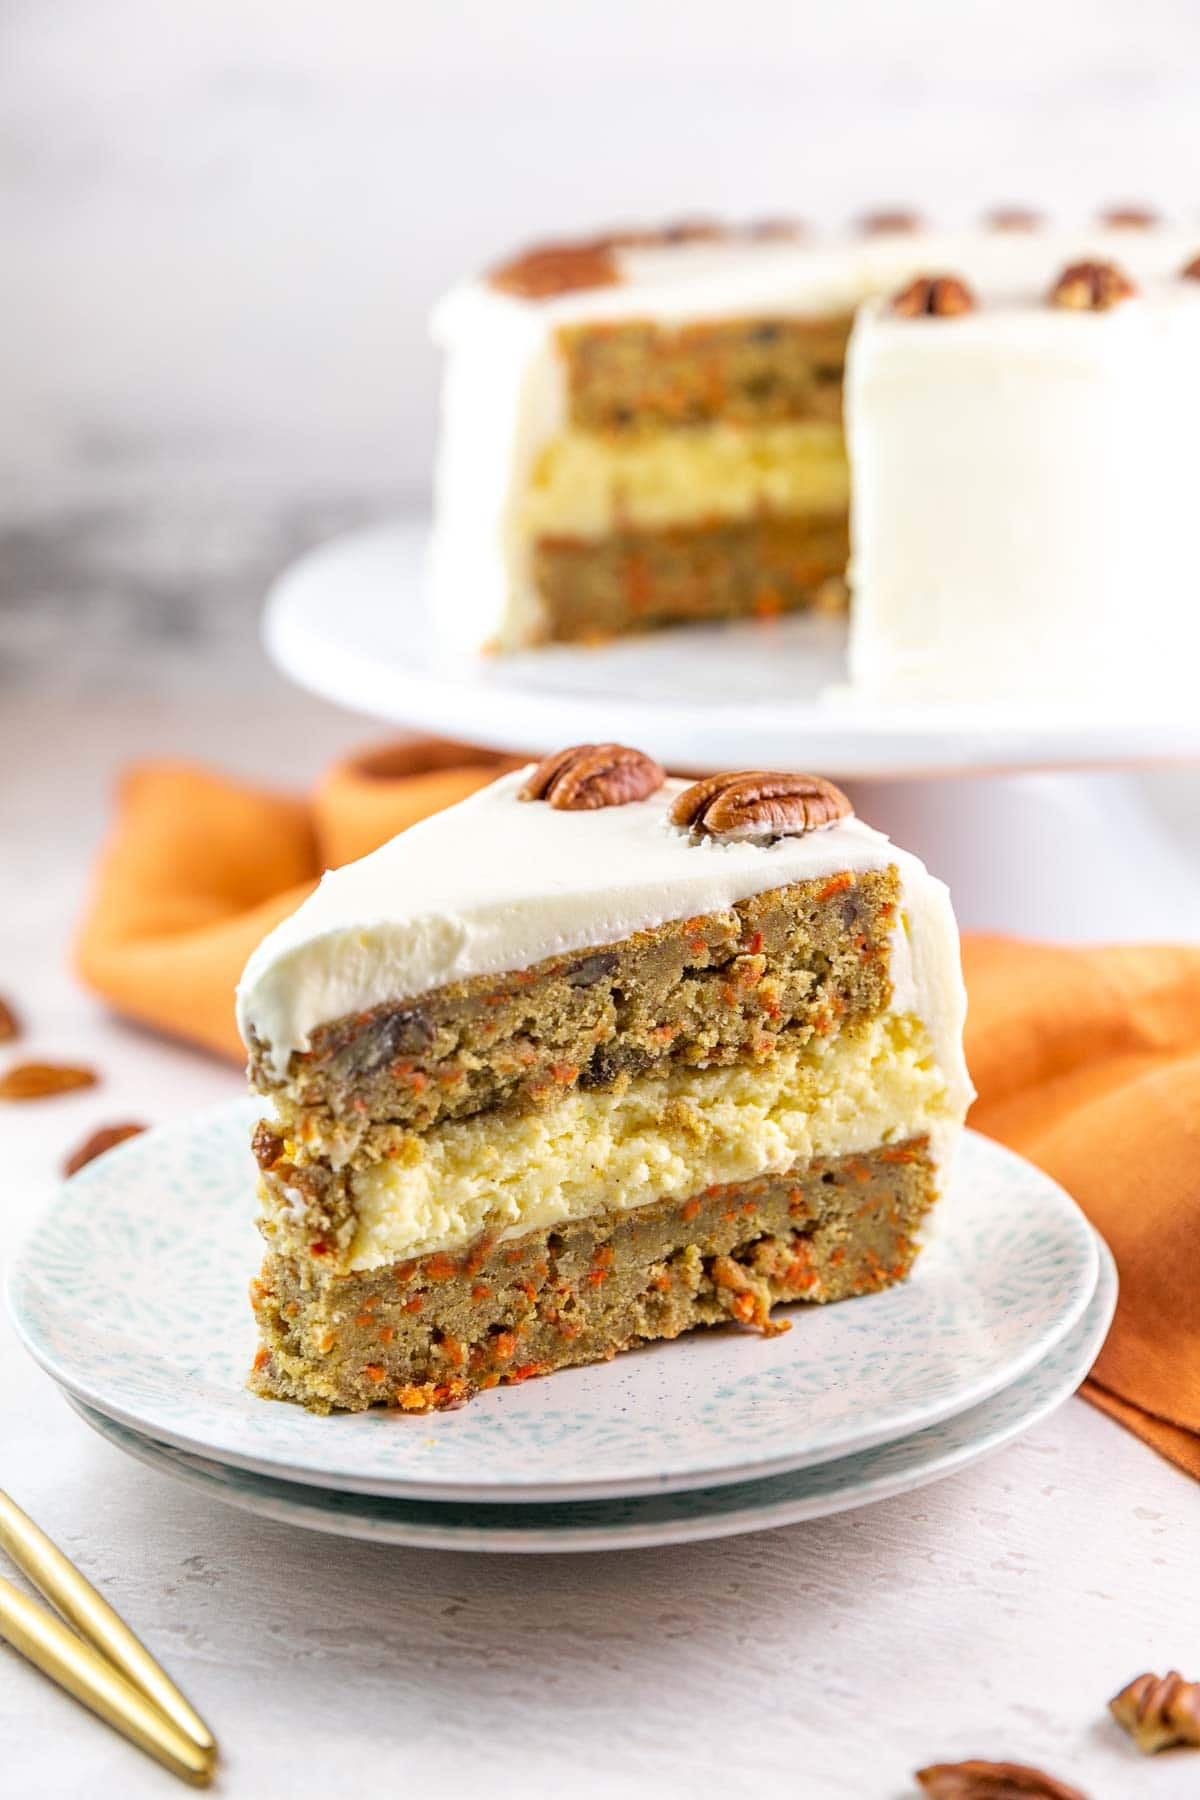 a slice of a cake with two layers of carrot cake and one layer of cheesecake